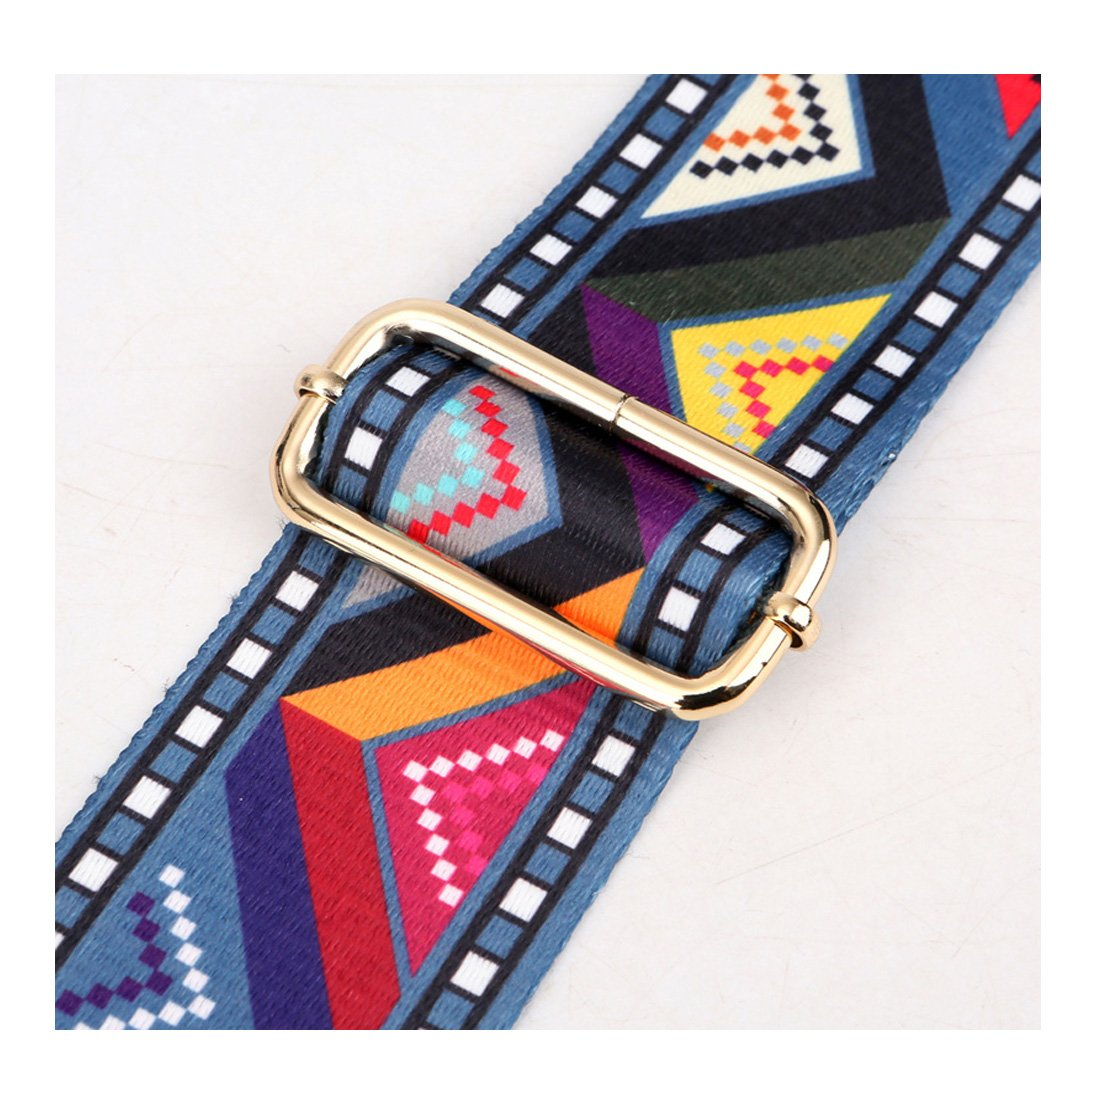 Umily Anse de Sac Purse Straps Large 3.8cm /& Longueur 80-140cm bandouliere pour Sac Anse Large Sac Sangle Sac bandouliere Sangle de Rechange pour Sac /à Main